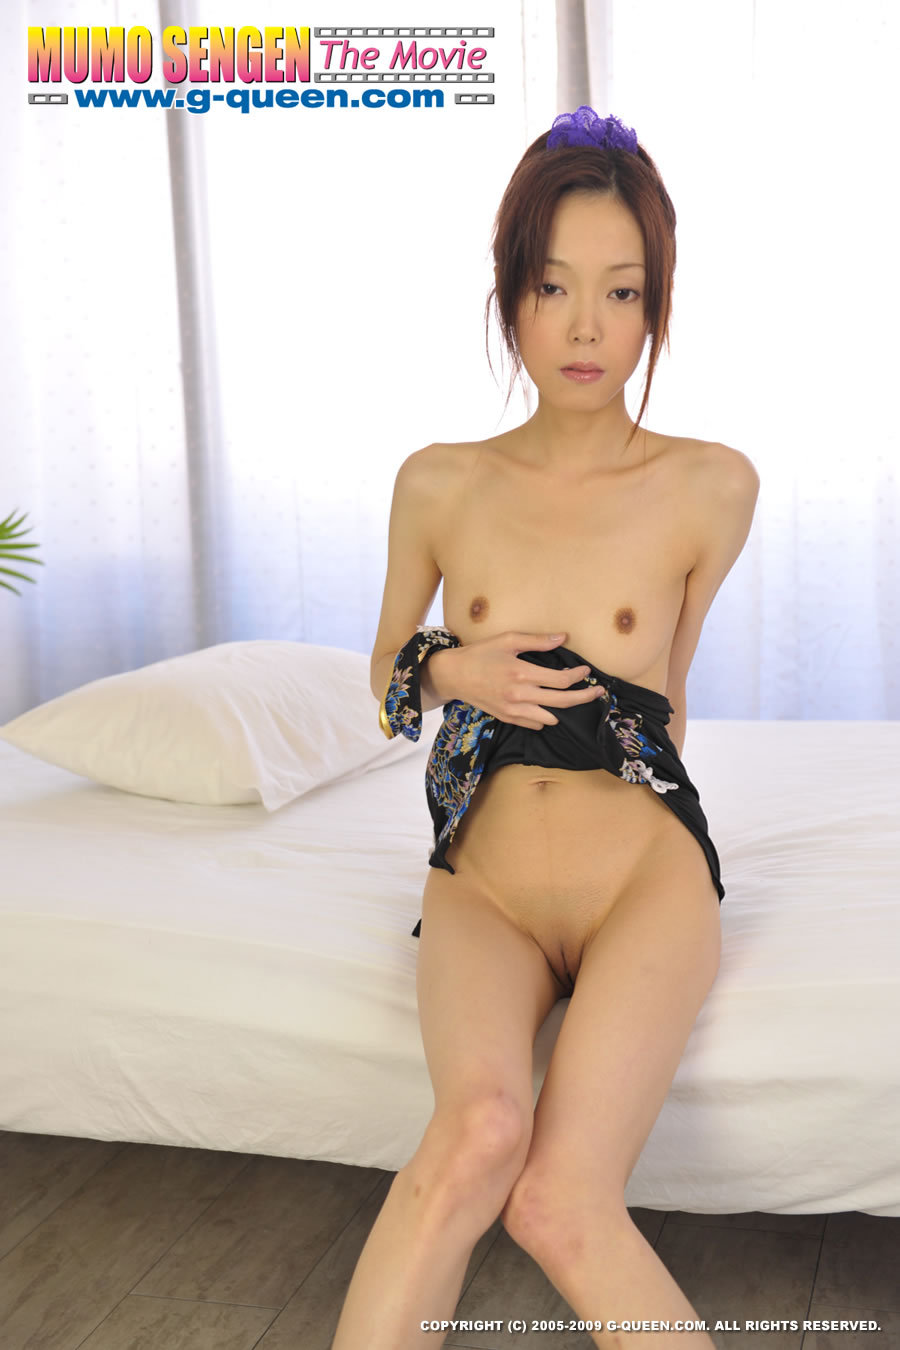 Thick nude japanese girl think, that